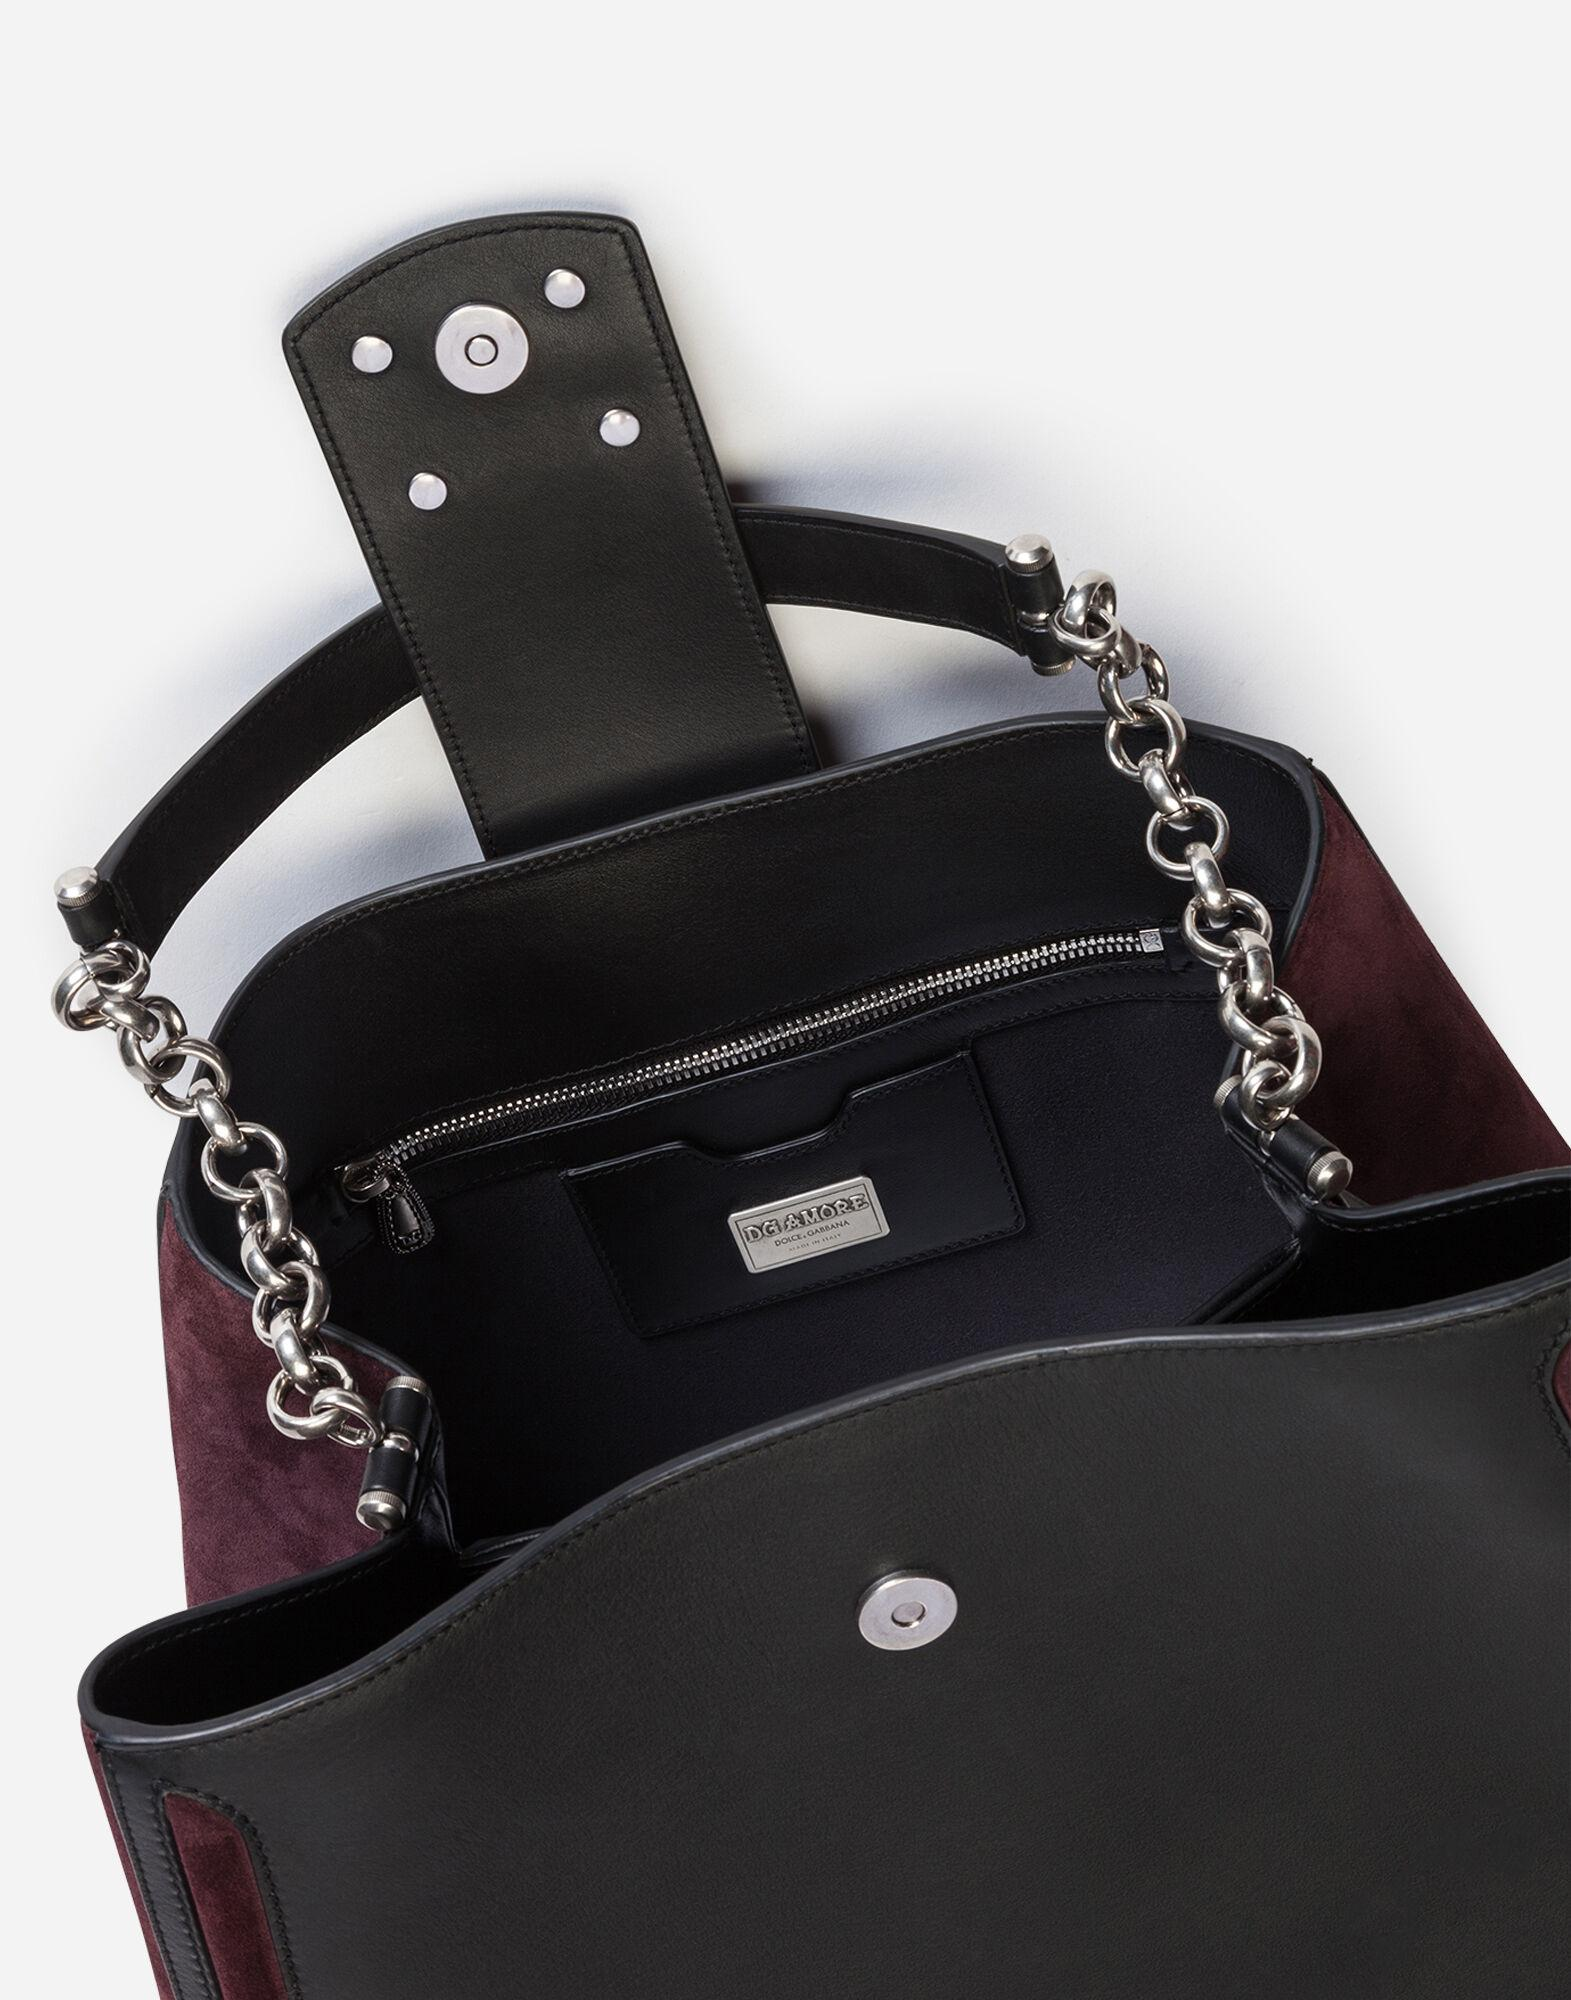 Large DG Amore bag in mixed materials 3